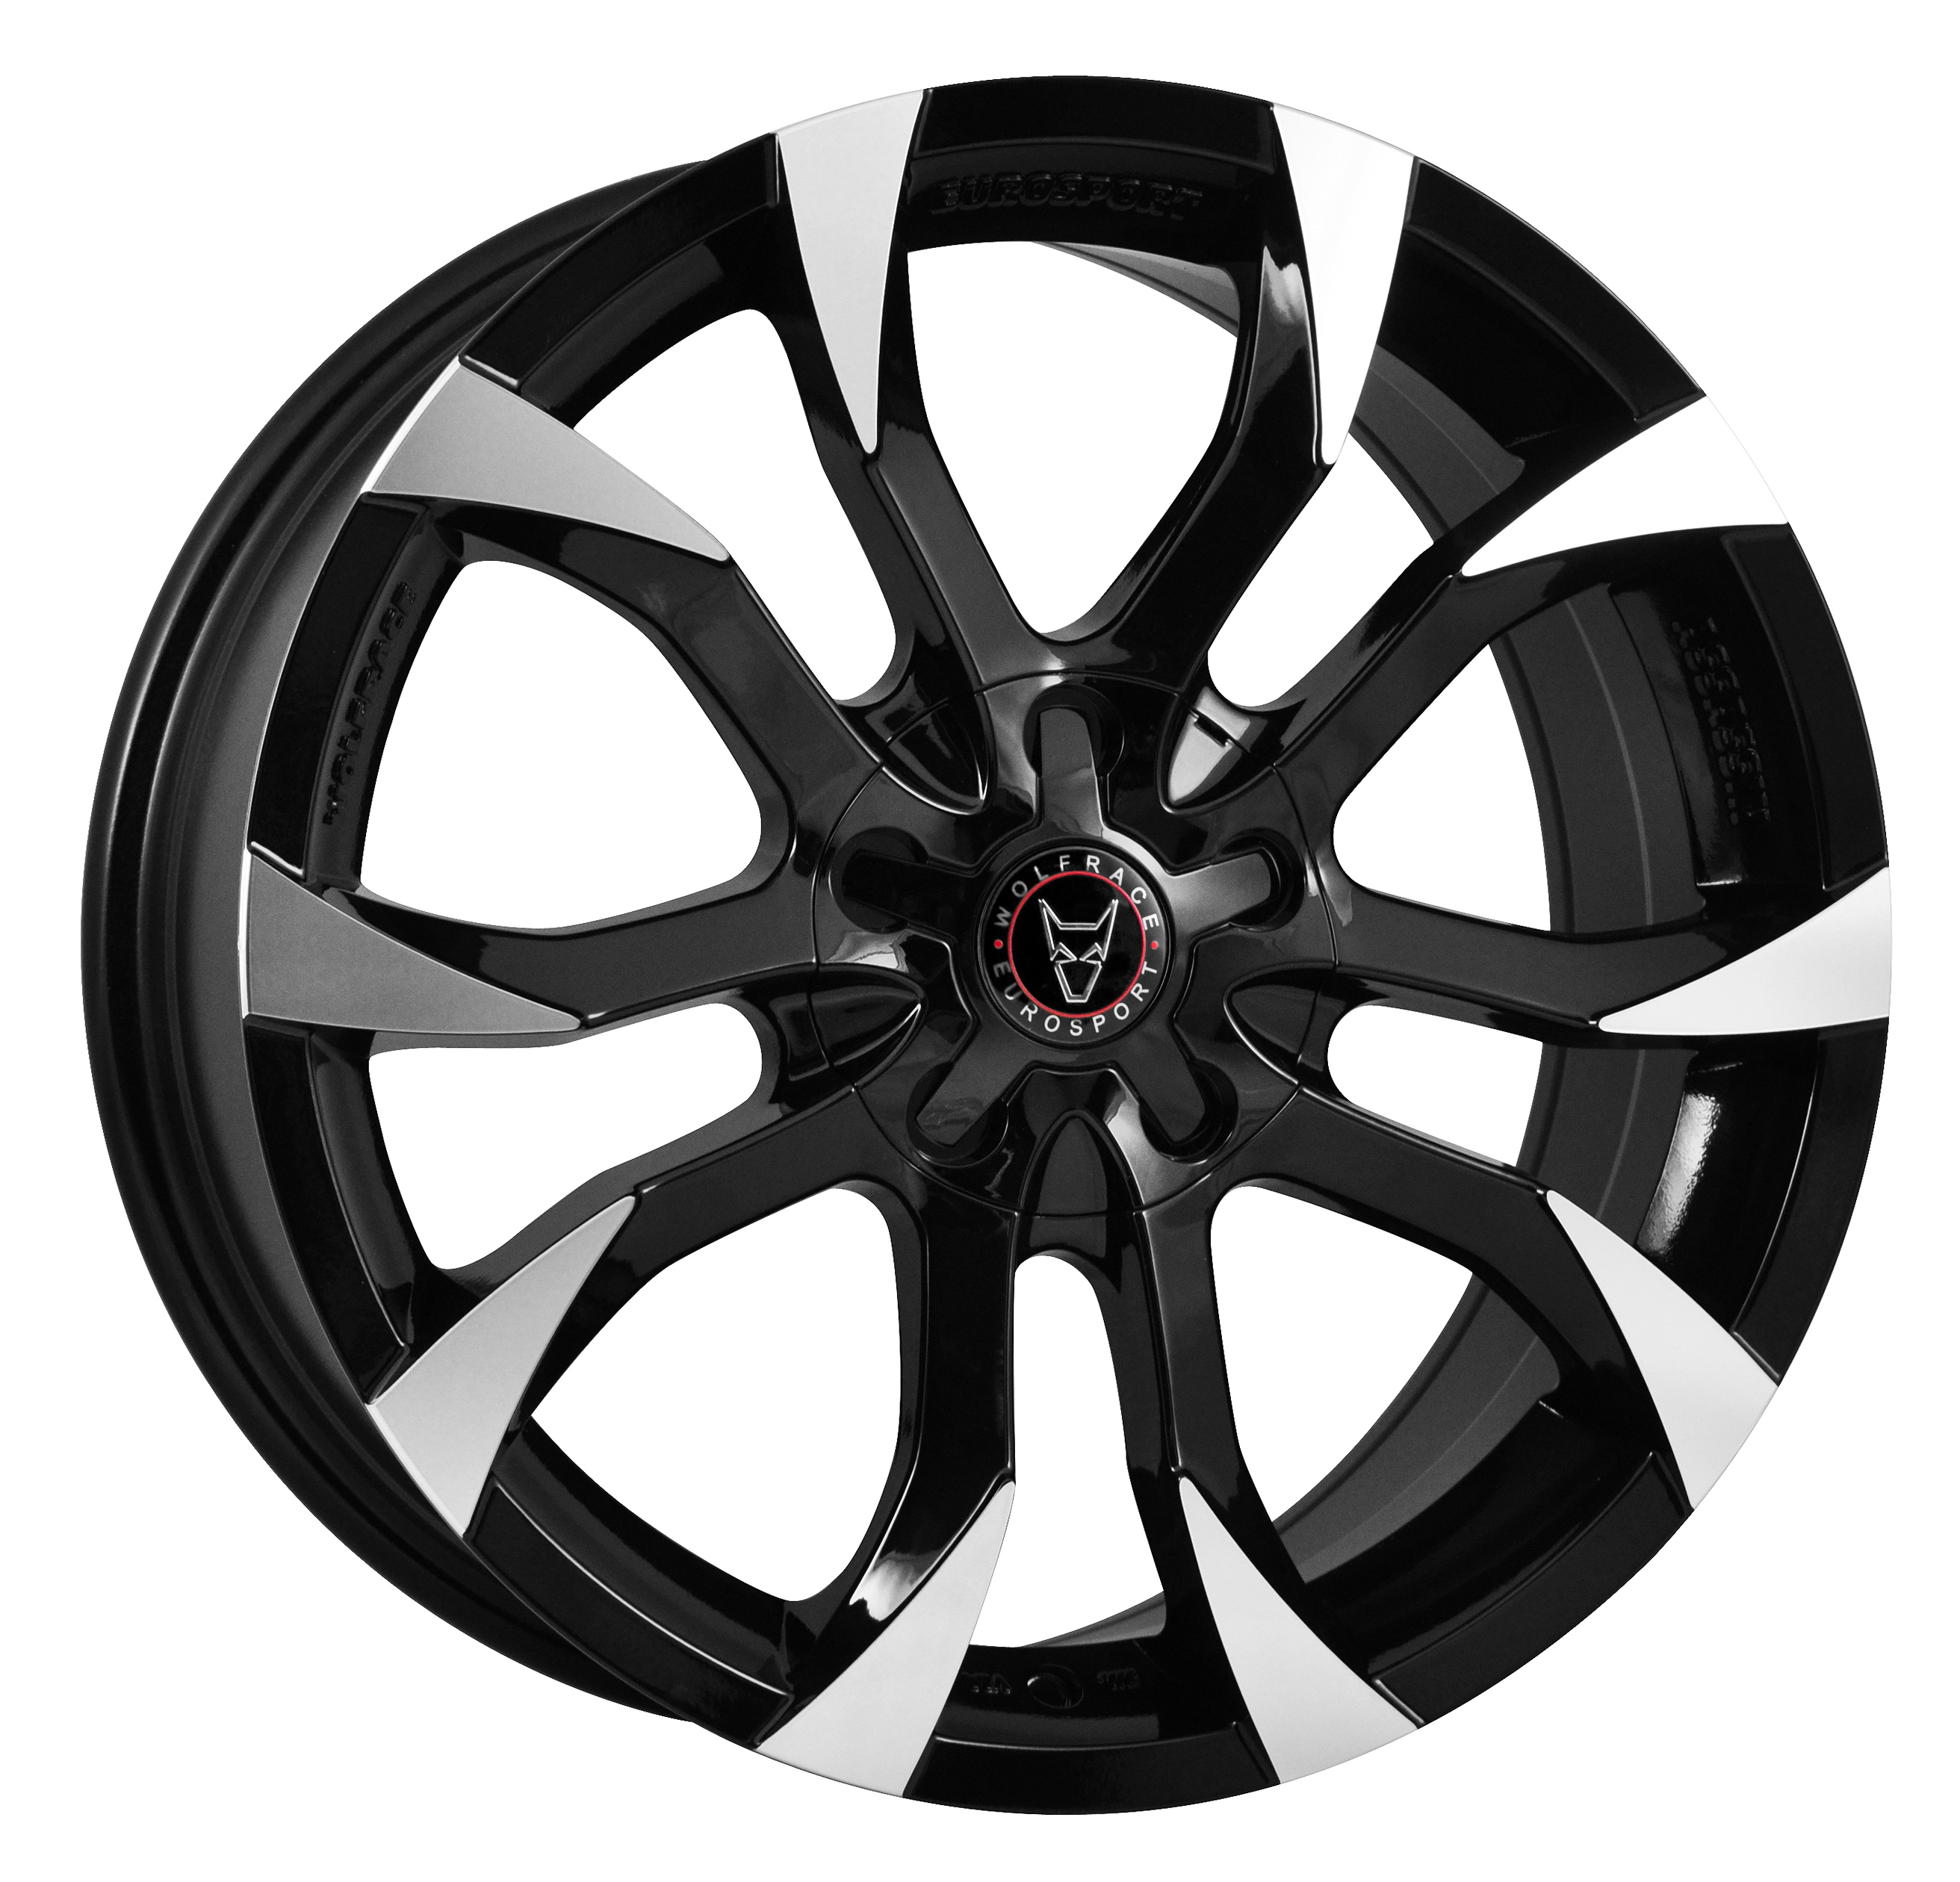 WOLFRACE EUROSPORT ASSASSIN 7x16 4x108 ET35 BLACK POLISHED